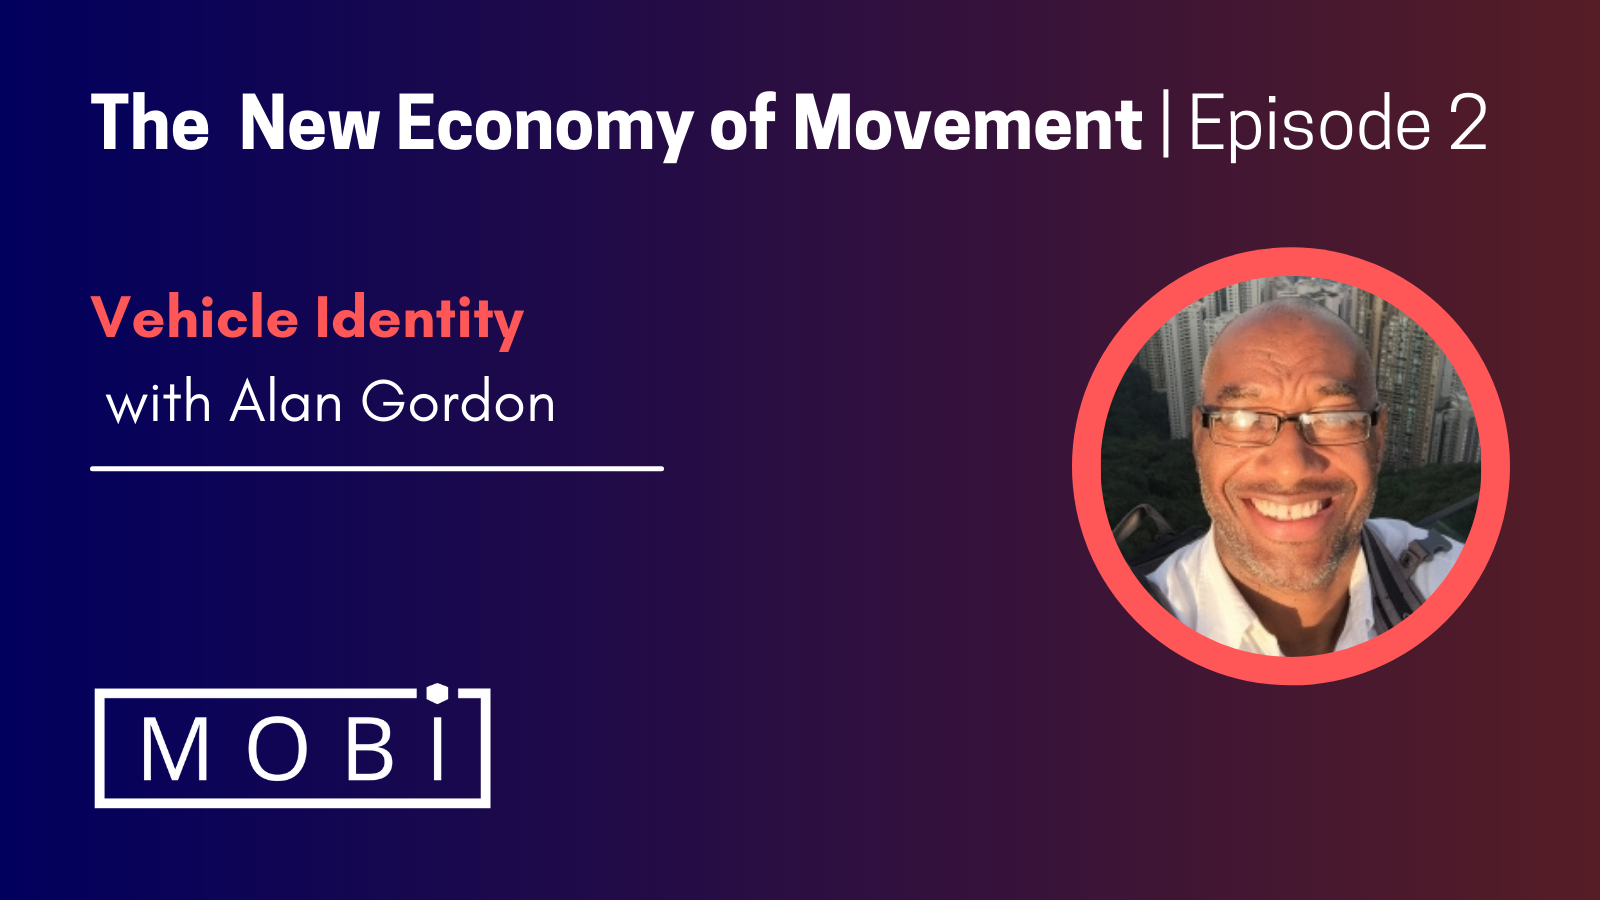 The New Economy of Movement: Vehicle Identity with Alan Gordon